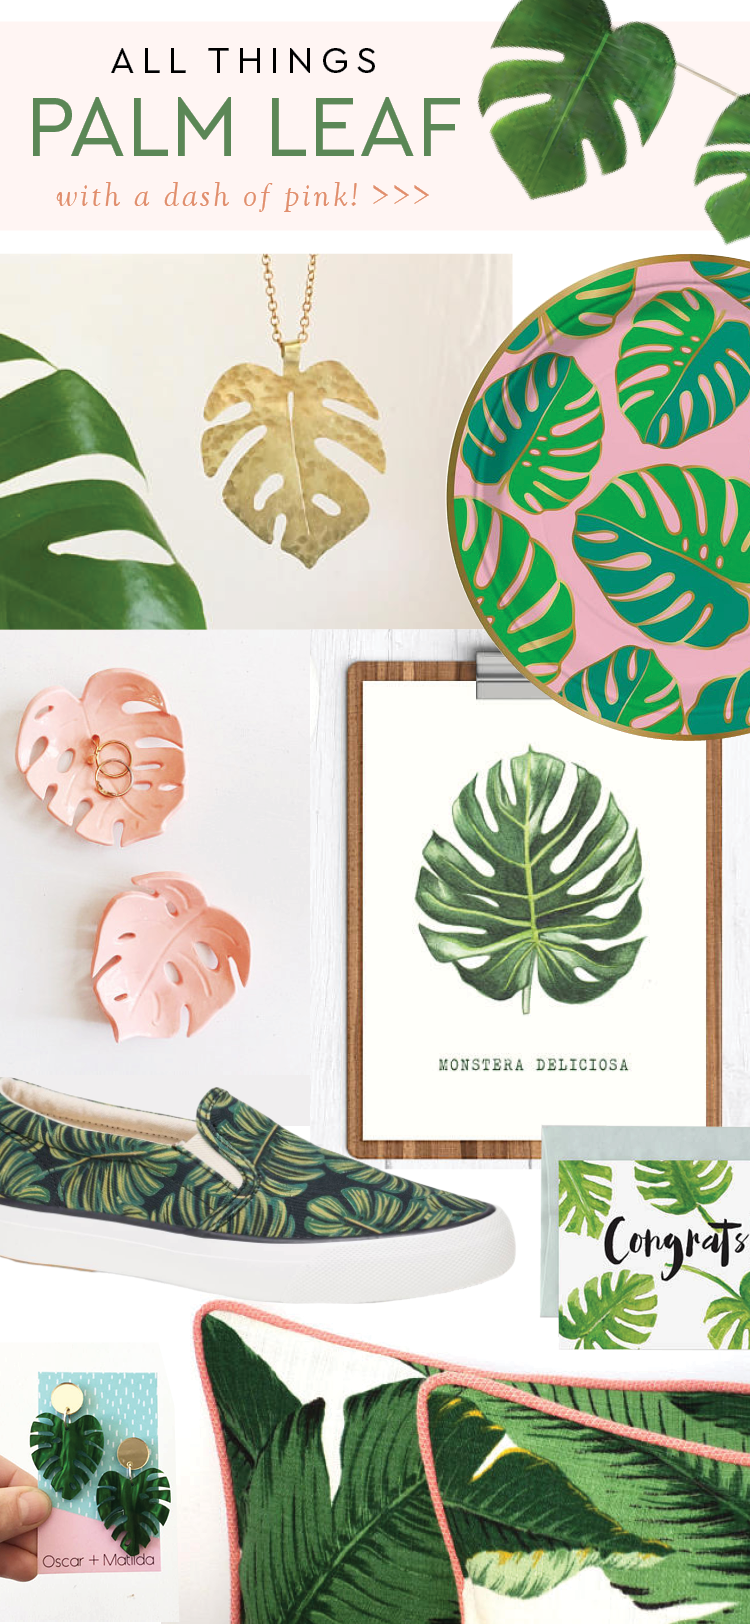 All Things Palm Leaf and pink